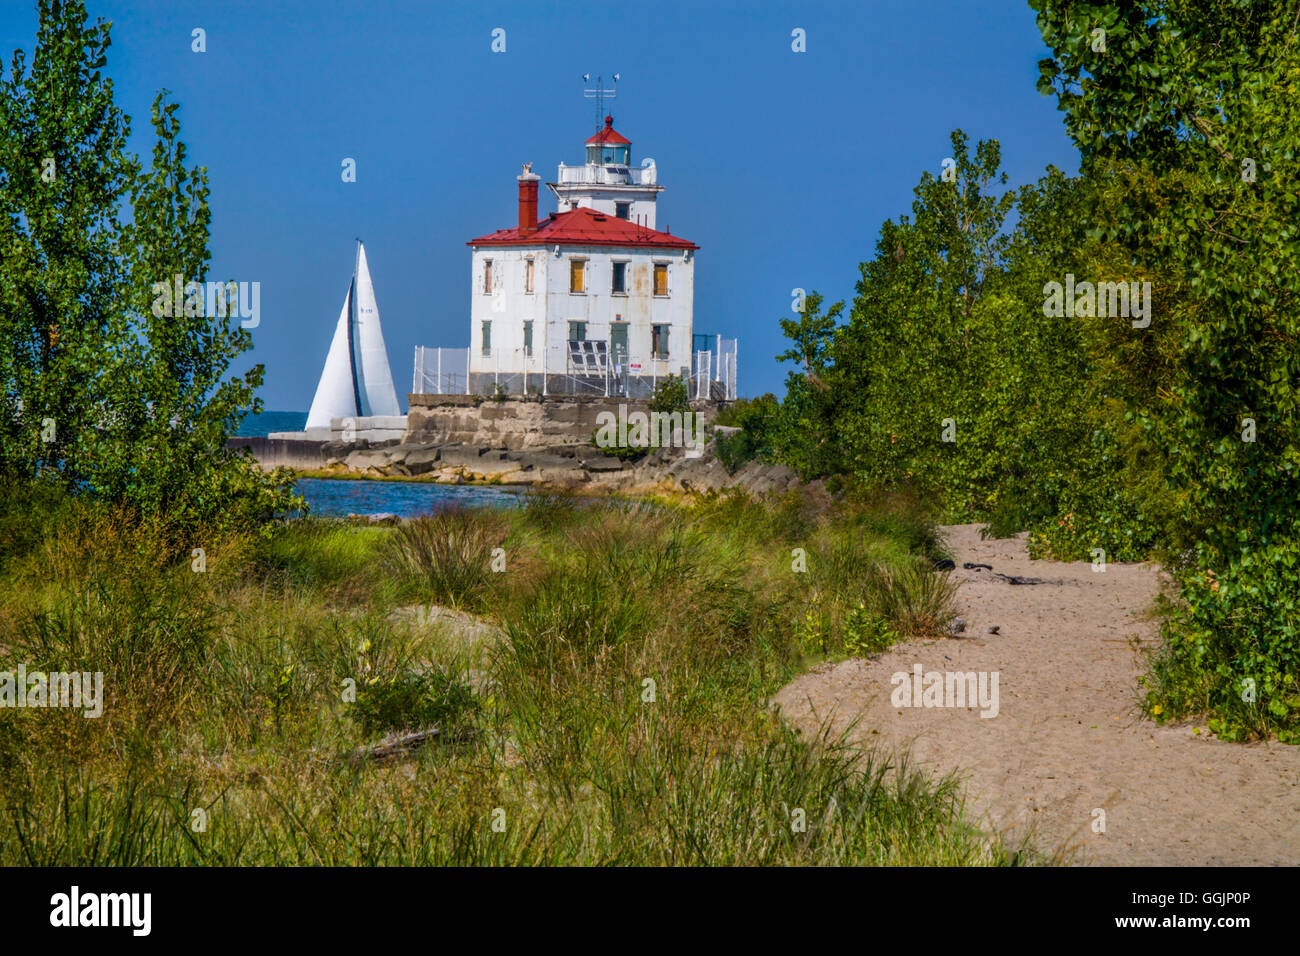 A classic Lake Erie lighthouse, The Fairport Harbor West Breakwater Light in Fairport Ohio as a sailboat passes - Stock Image